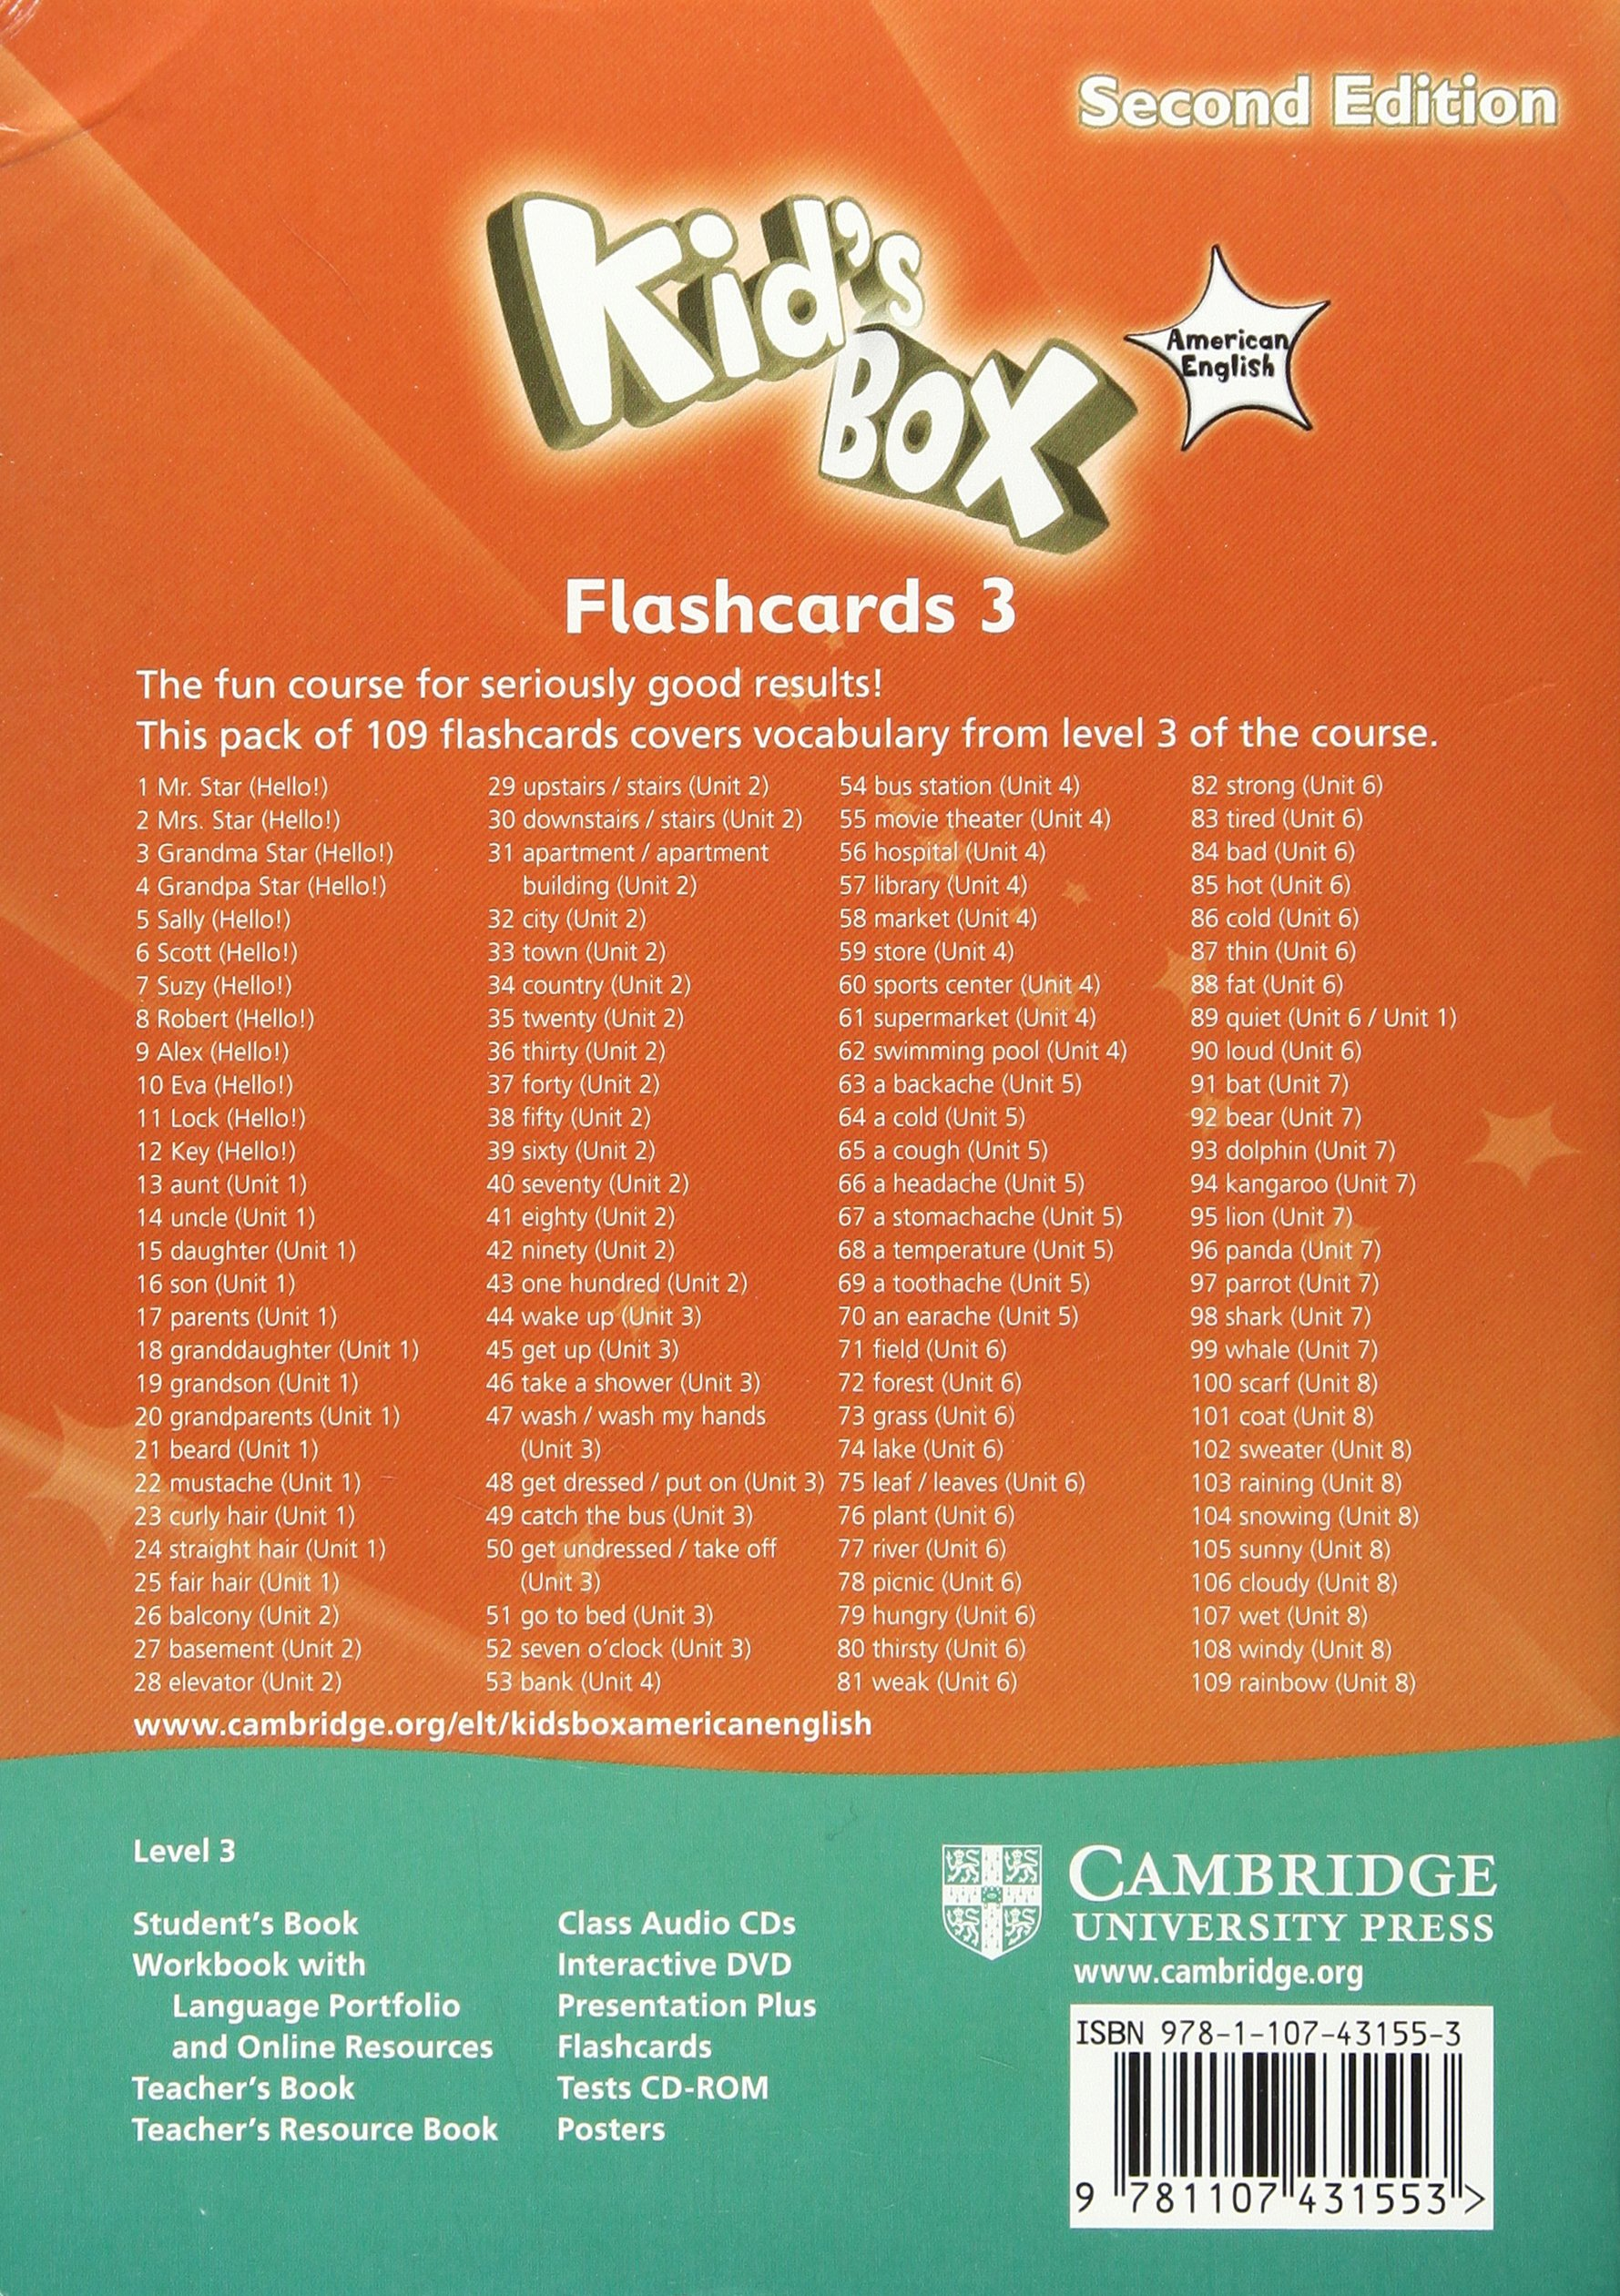 Kid's Box American English Level 3 Flashcards Pack of 109 2nd Edition -  9781107431553: Amazon.es: Caroline Nixon, Michael Tomlinson: Libros en  idiomas ...